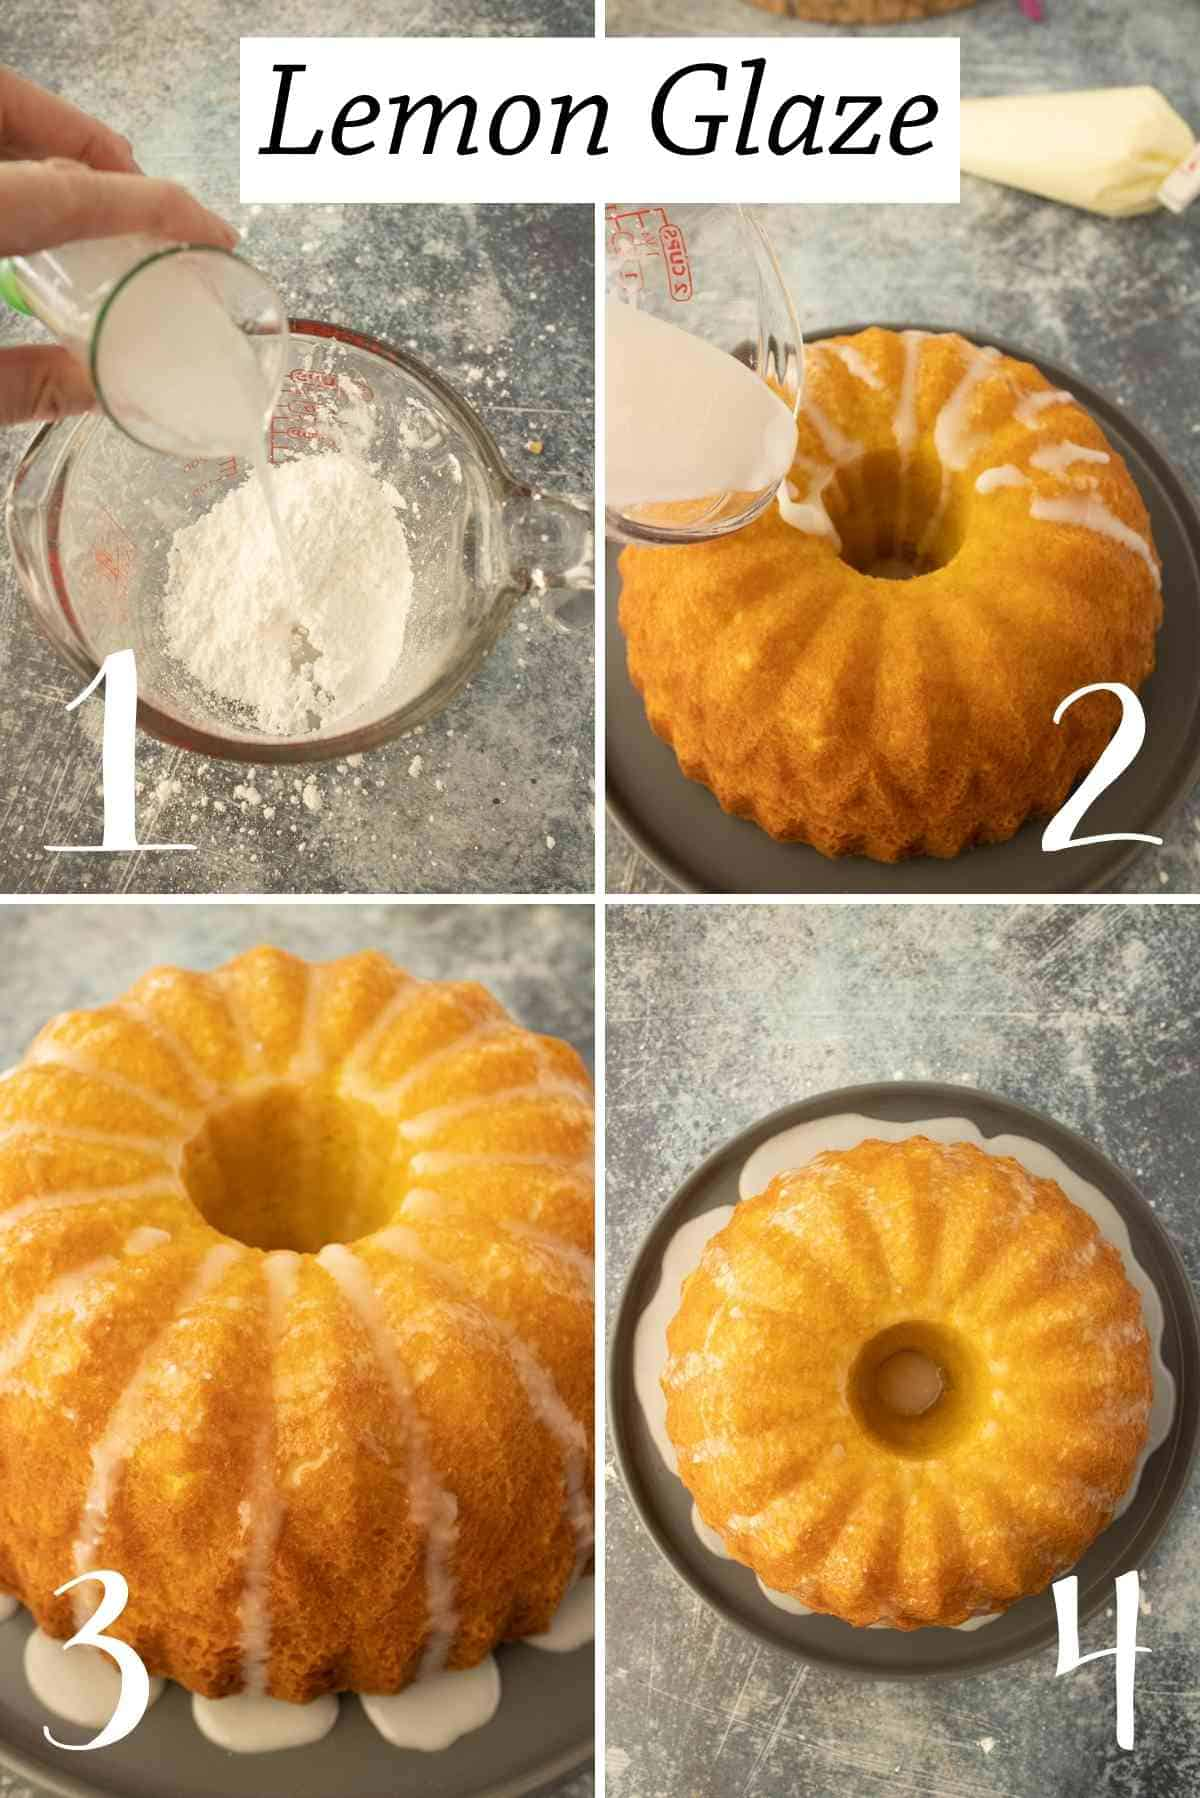 Making the lemon glaze and pouring it over the cake.